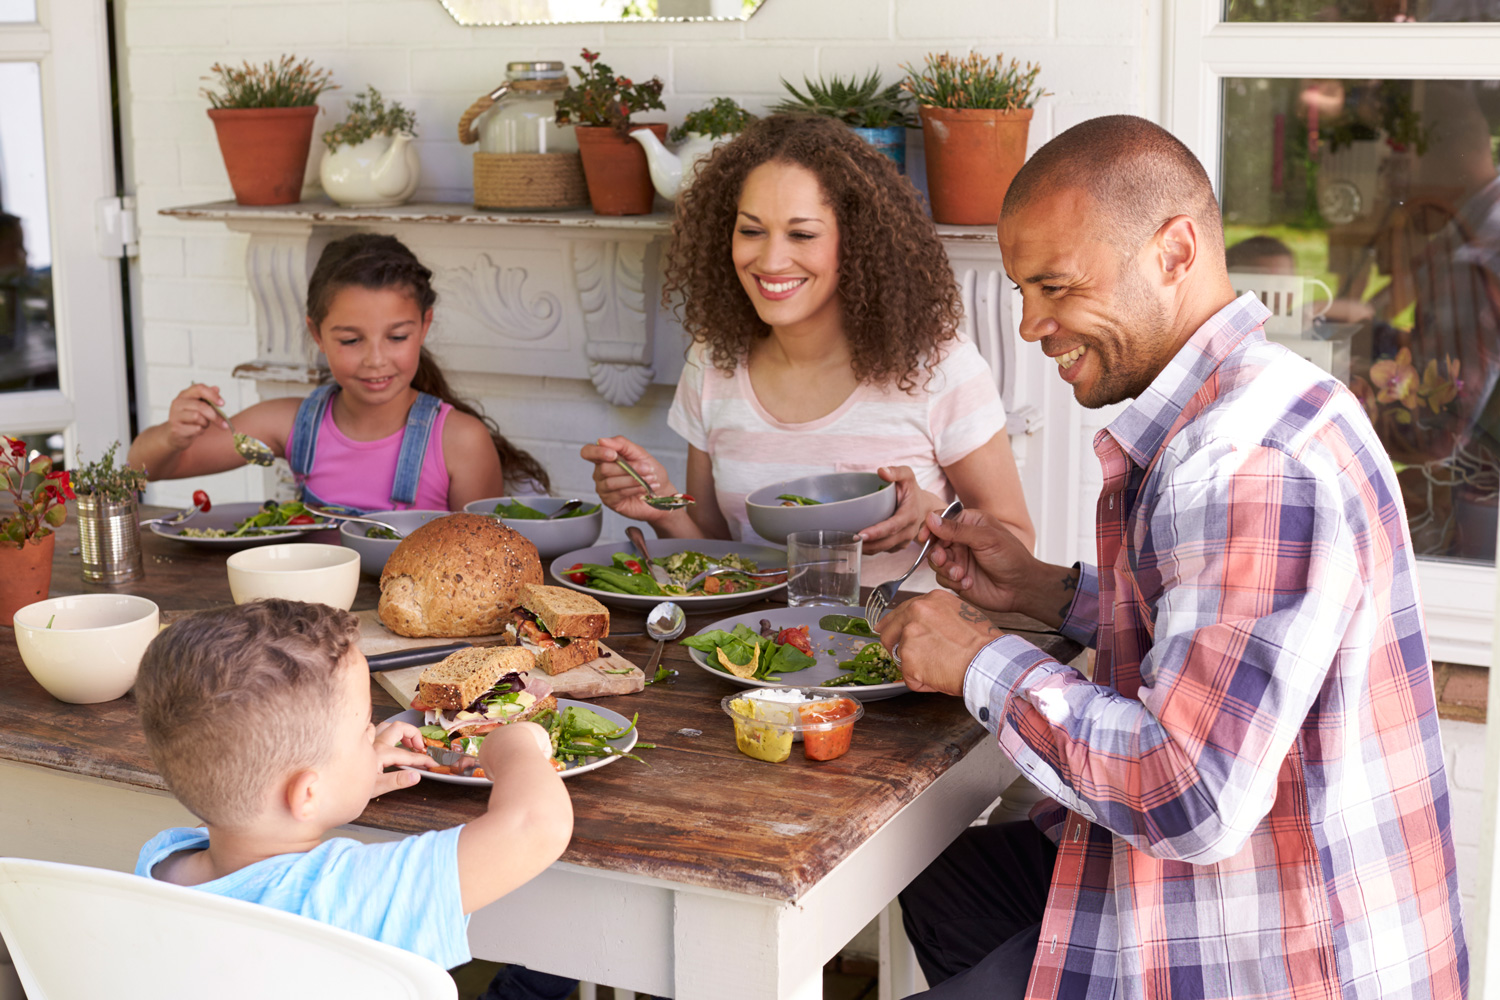 N-Family-having-healthy-meal-at-home-with-children-smiling-and-laughing.jpg